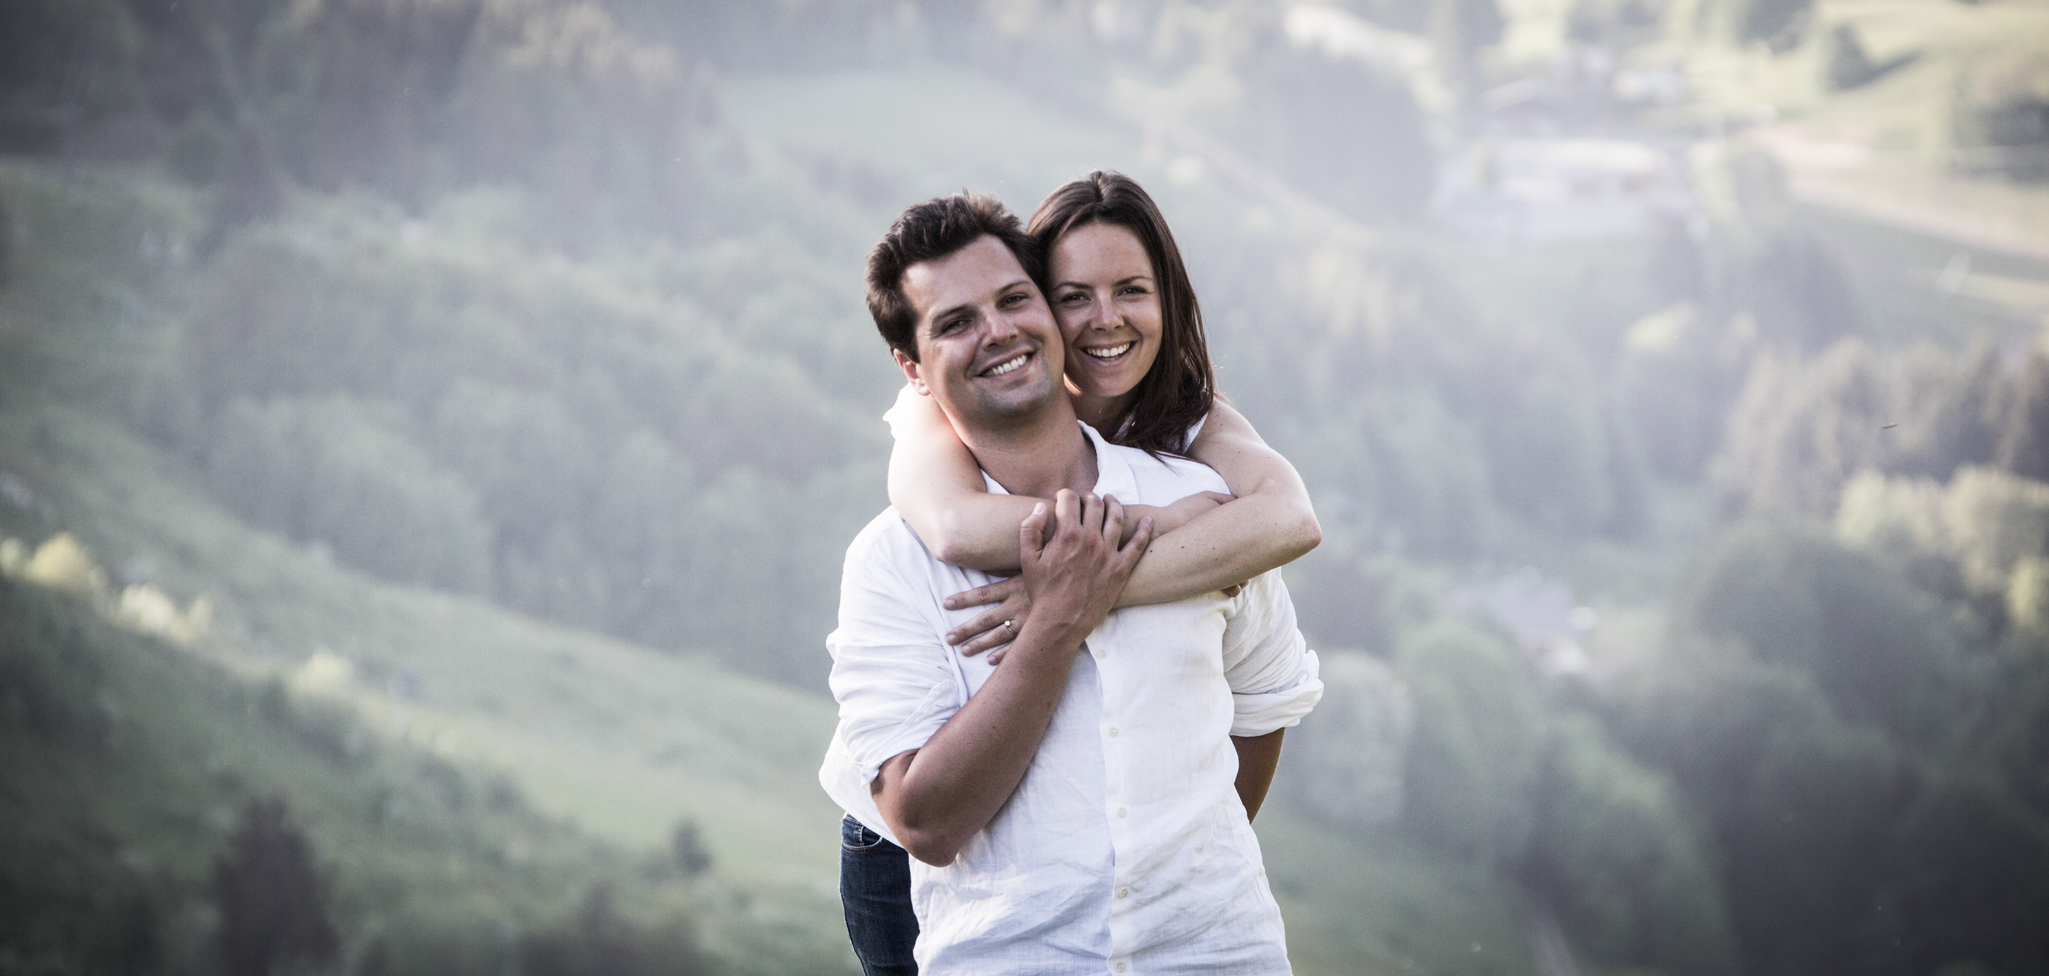 photographe-mariage-ardeche-rhone-alpes-geneve-suisse-courchevel-megeve-photo--12